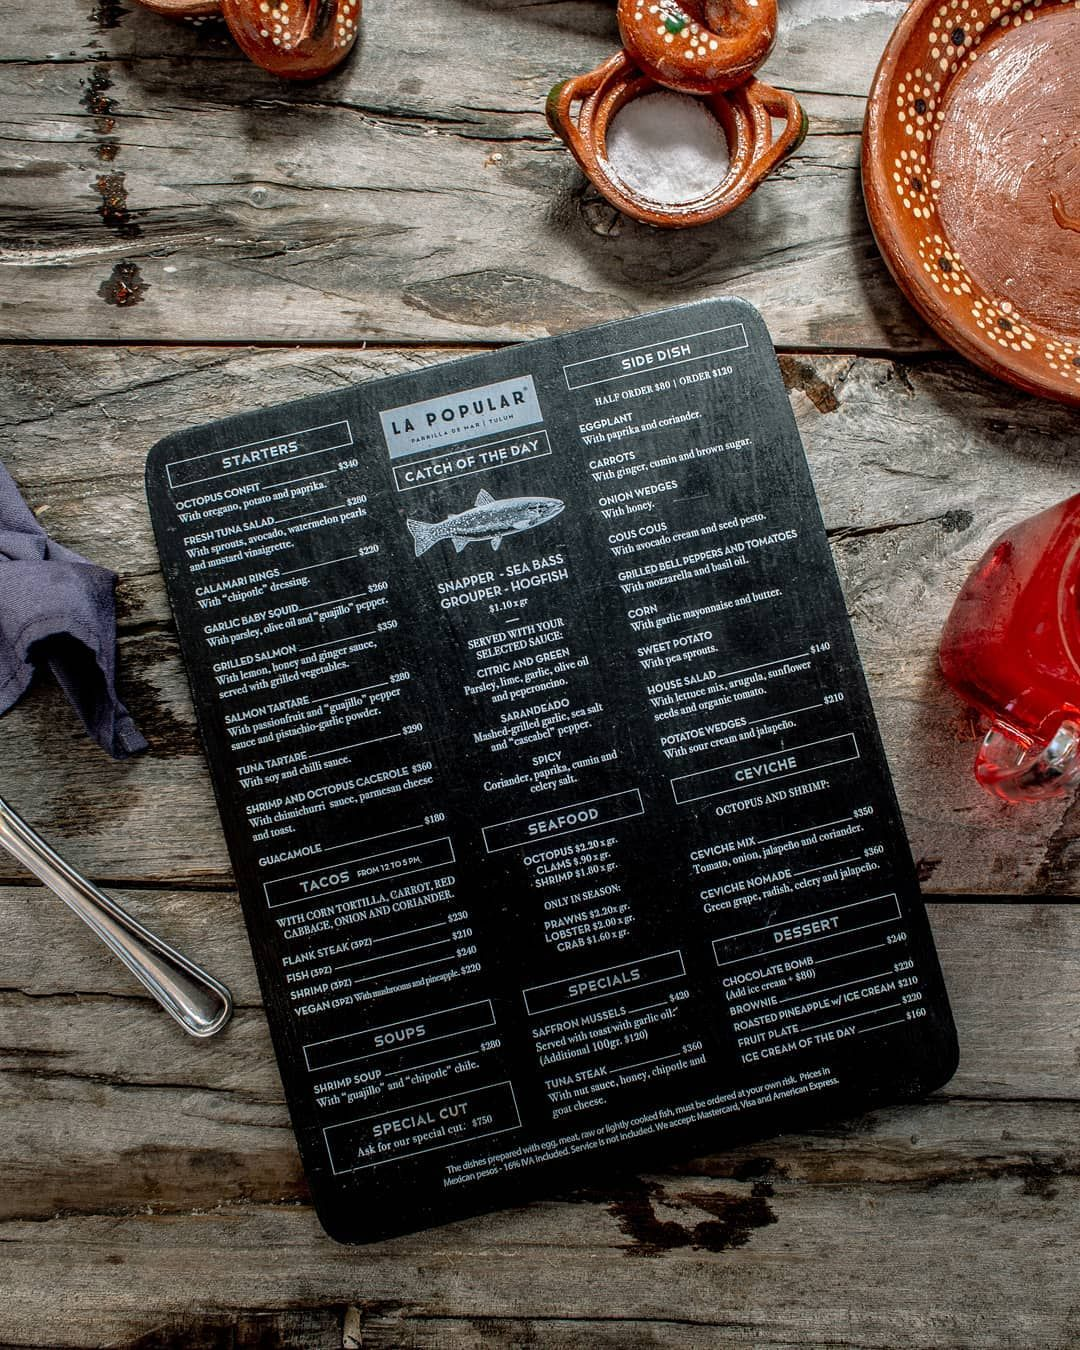 Our Menu Captures The Local Roots And Flavors Of The Pueblos Of Our Coast And Delivers Fresh Our Menu Captures The Local Roots And Flavors Of Seafood Ceviche Tulum Restaurants The